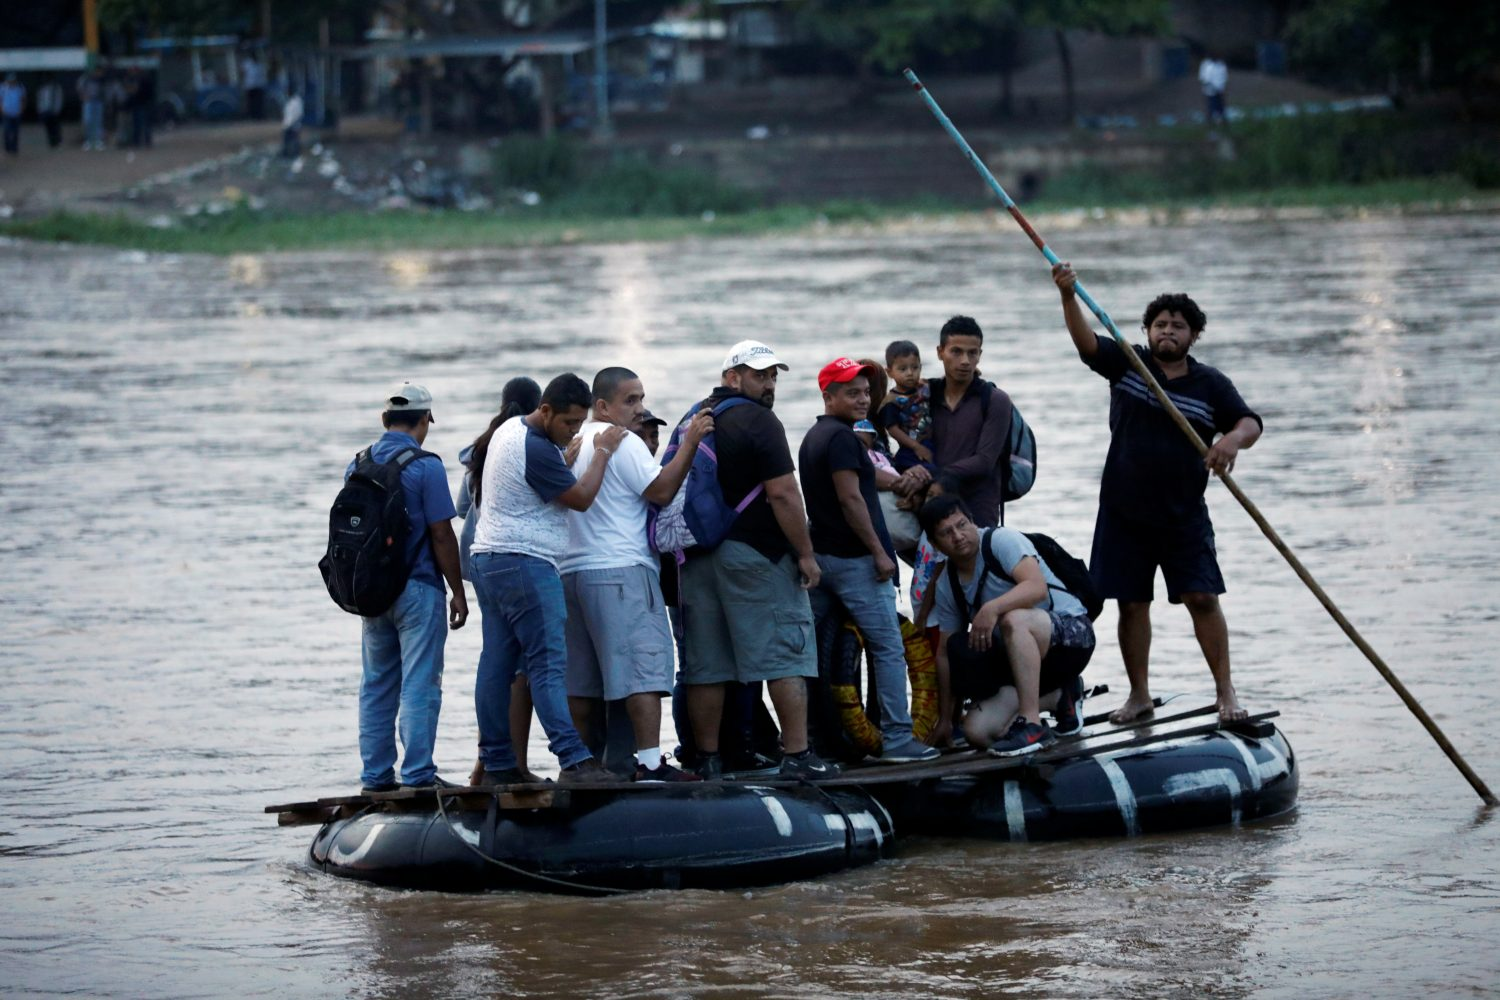 Central American migrants cross the Suchiate river on a raft from Tecun Uman, in Guatemala, to Ciudad Hidalgo, as seen from Ciudad Hidalgo, Mexico, June 10, 2019. REUTERS/Jose Cabezas